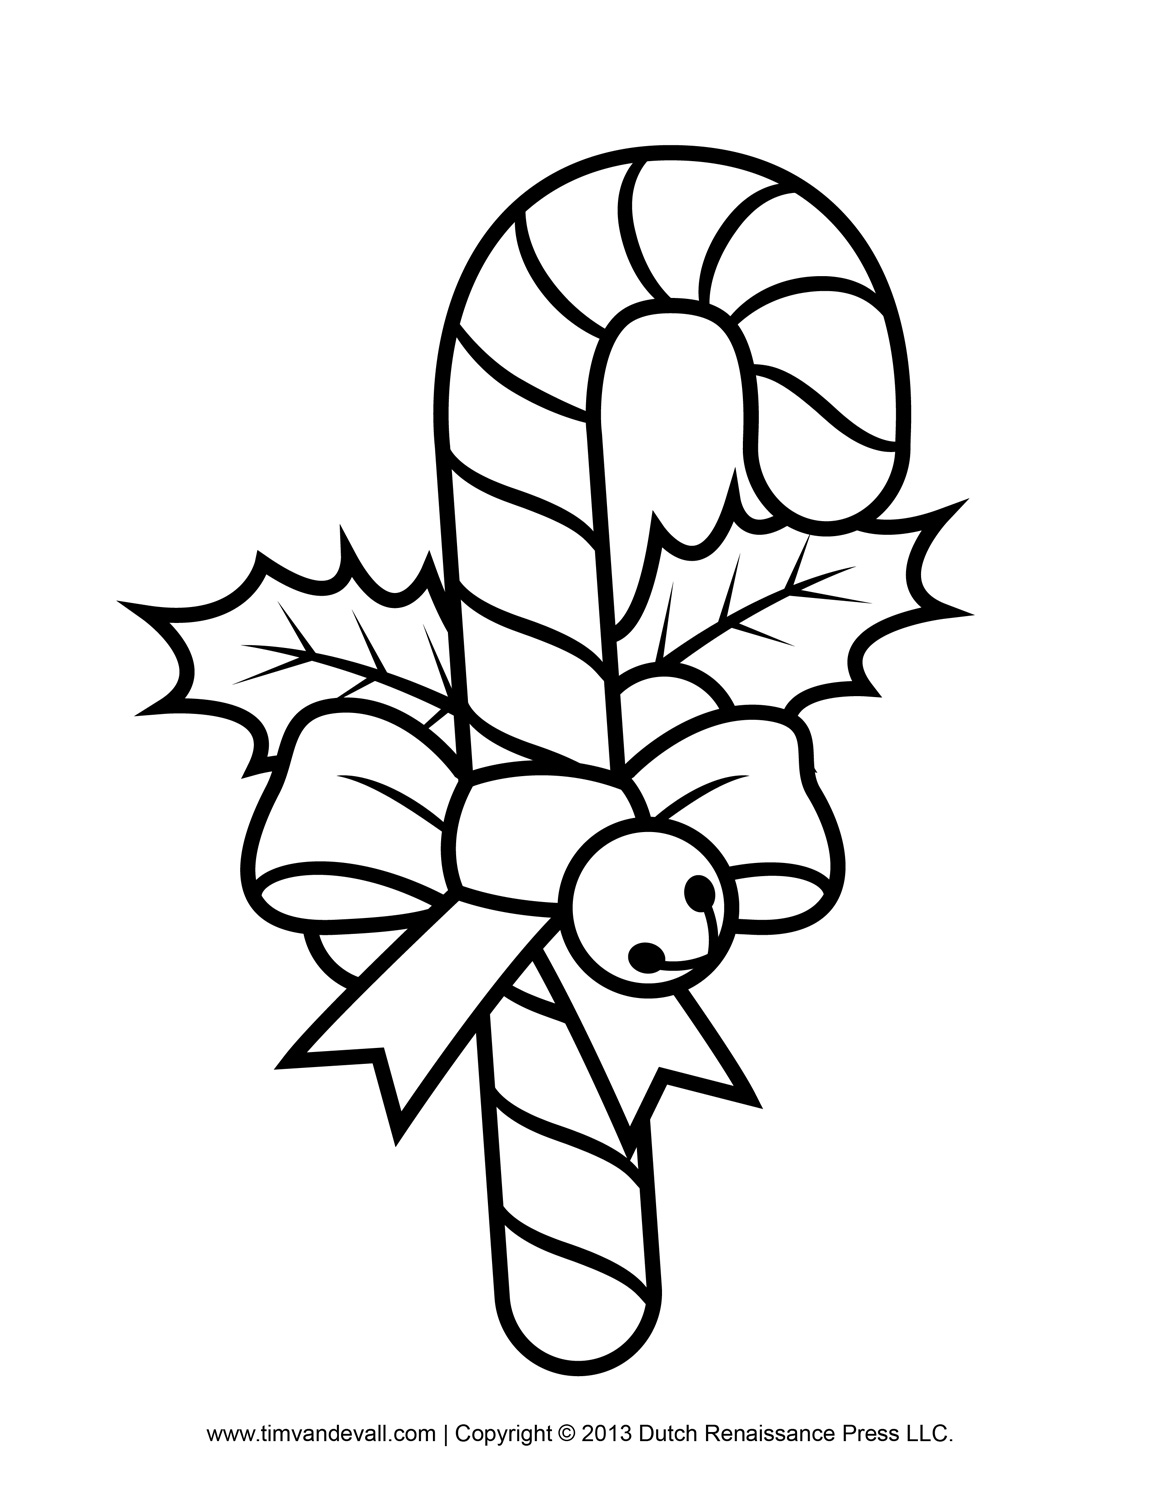 candy cane ornaments coloring pages - photo#14